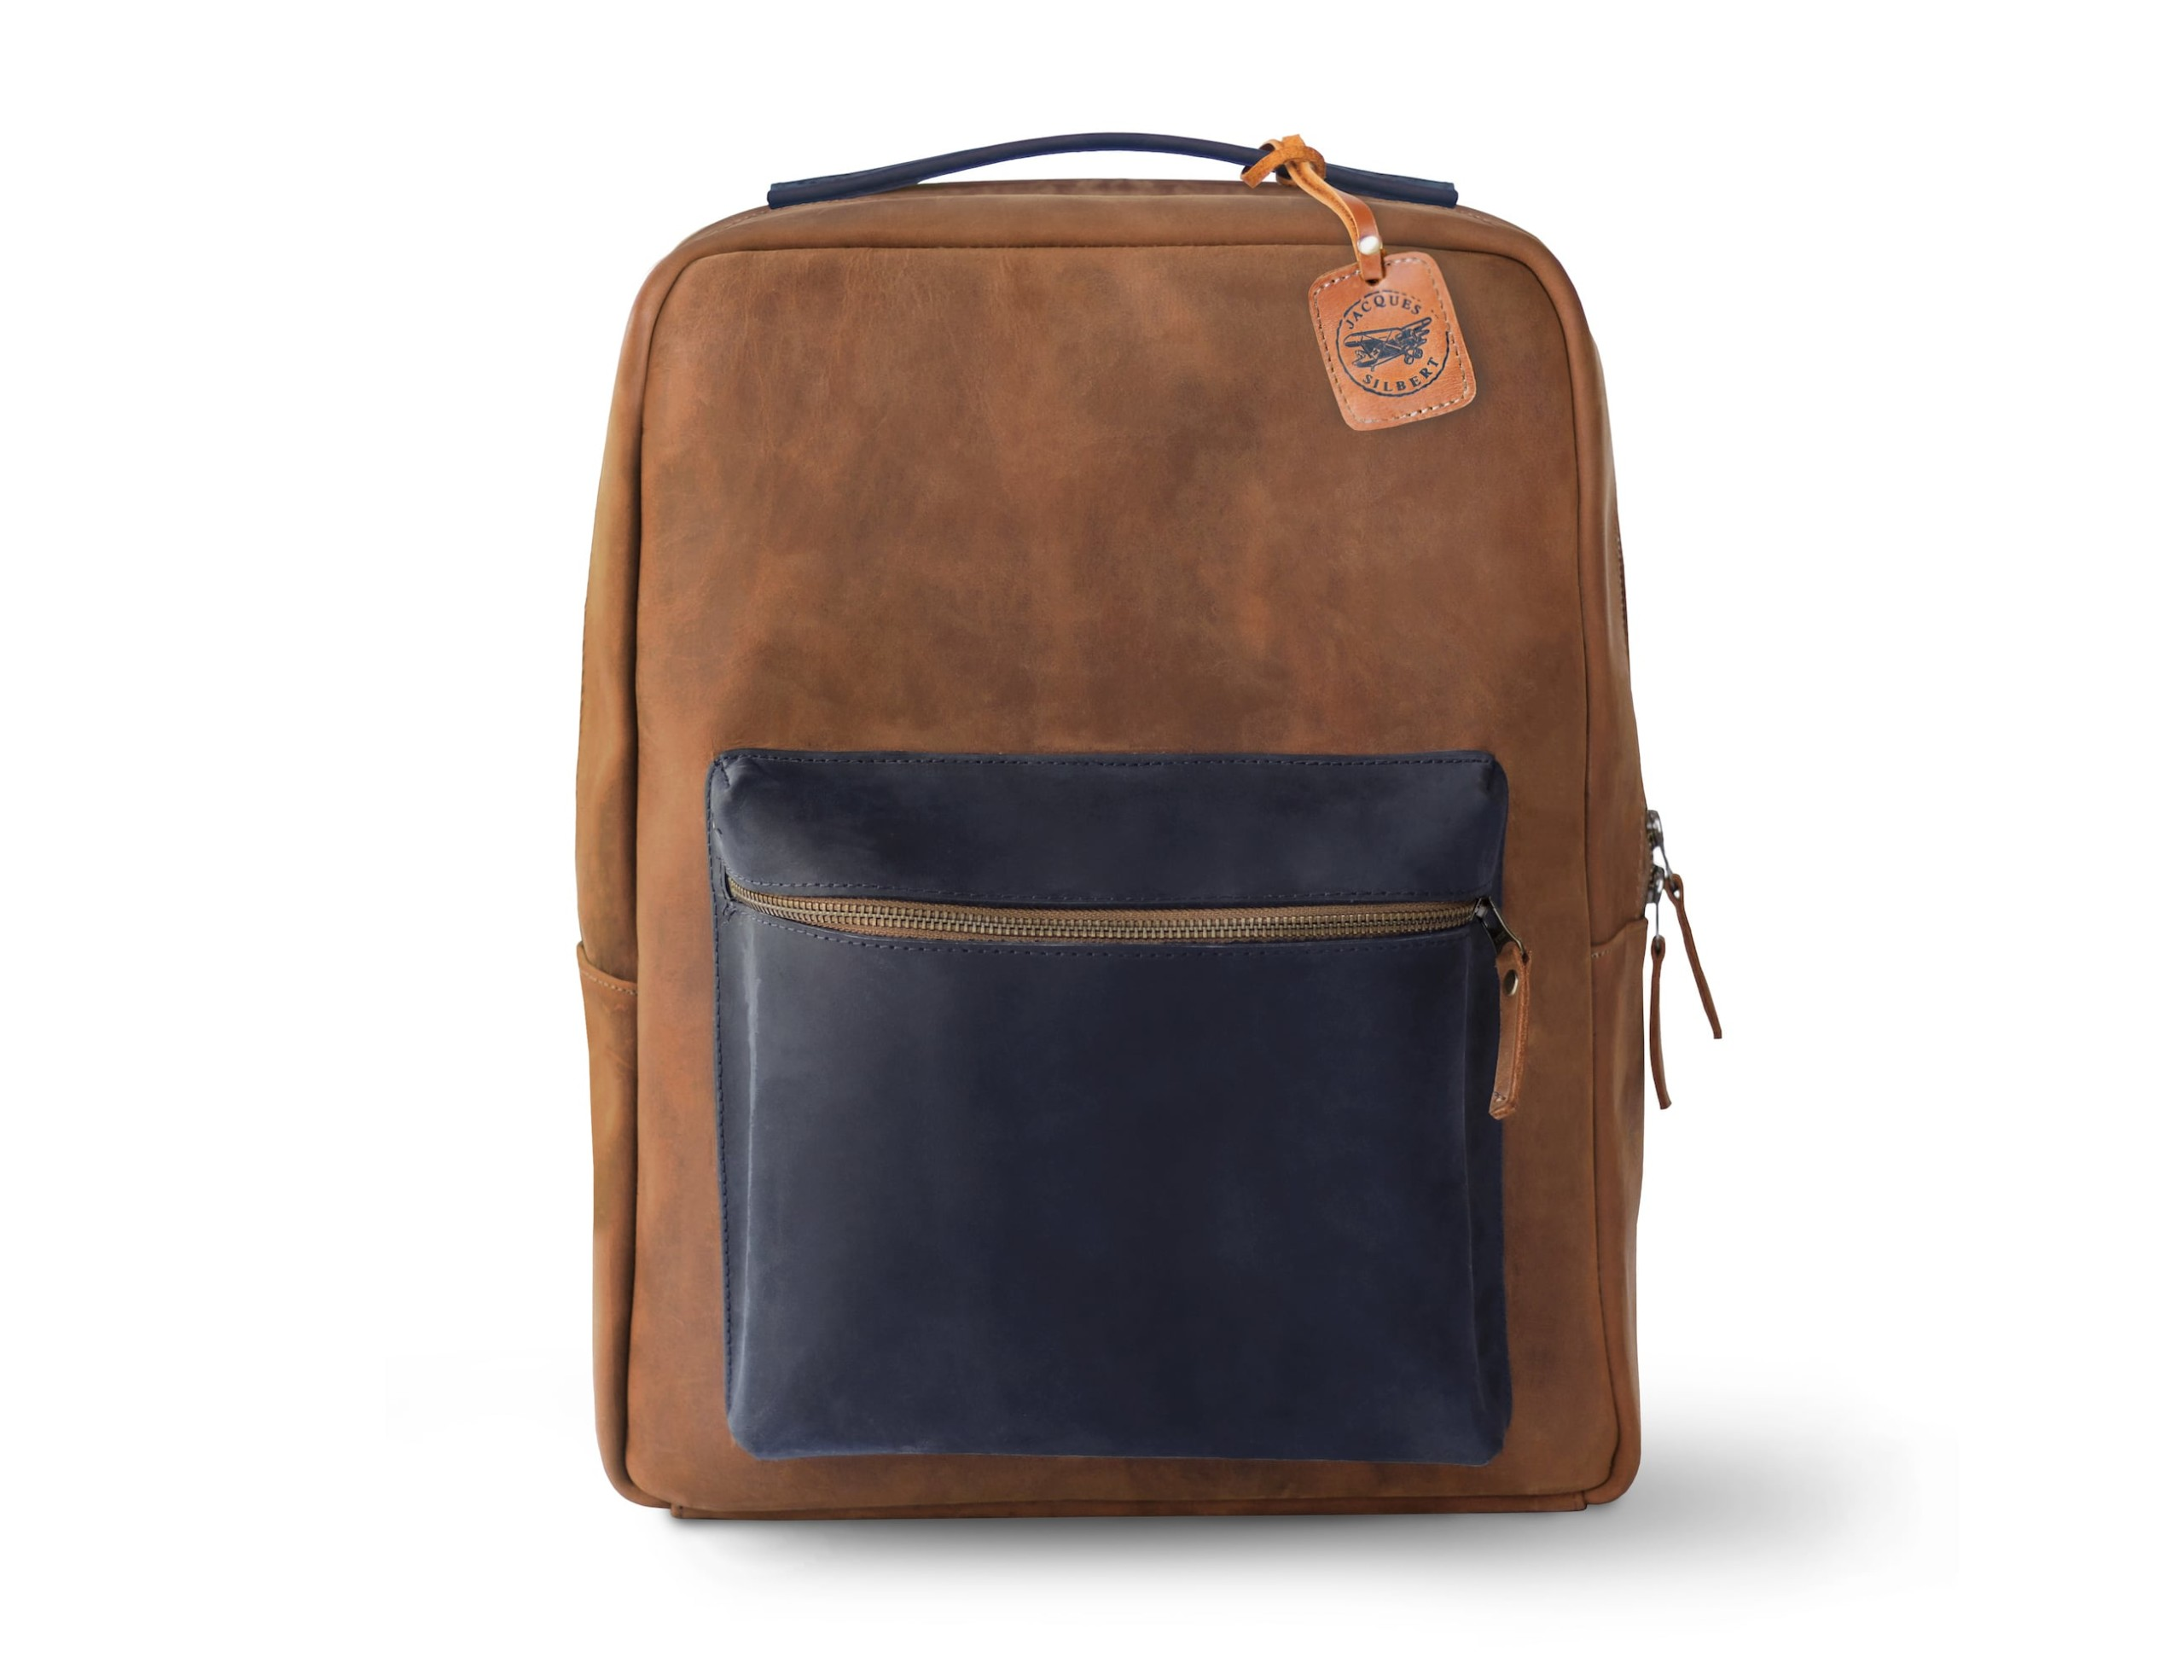 Jacques 777 Premium Customizable Leather Backpack